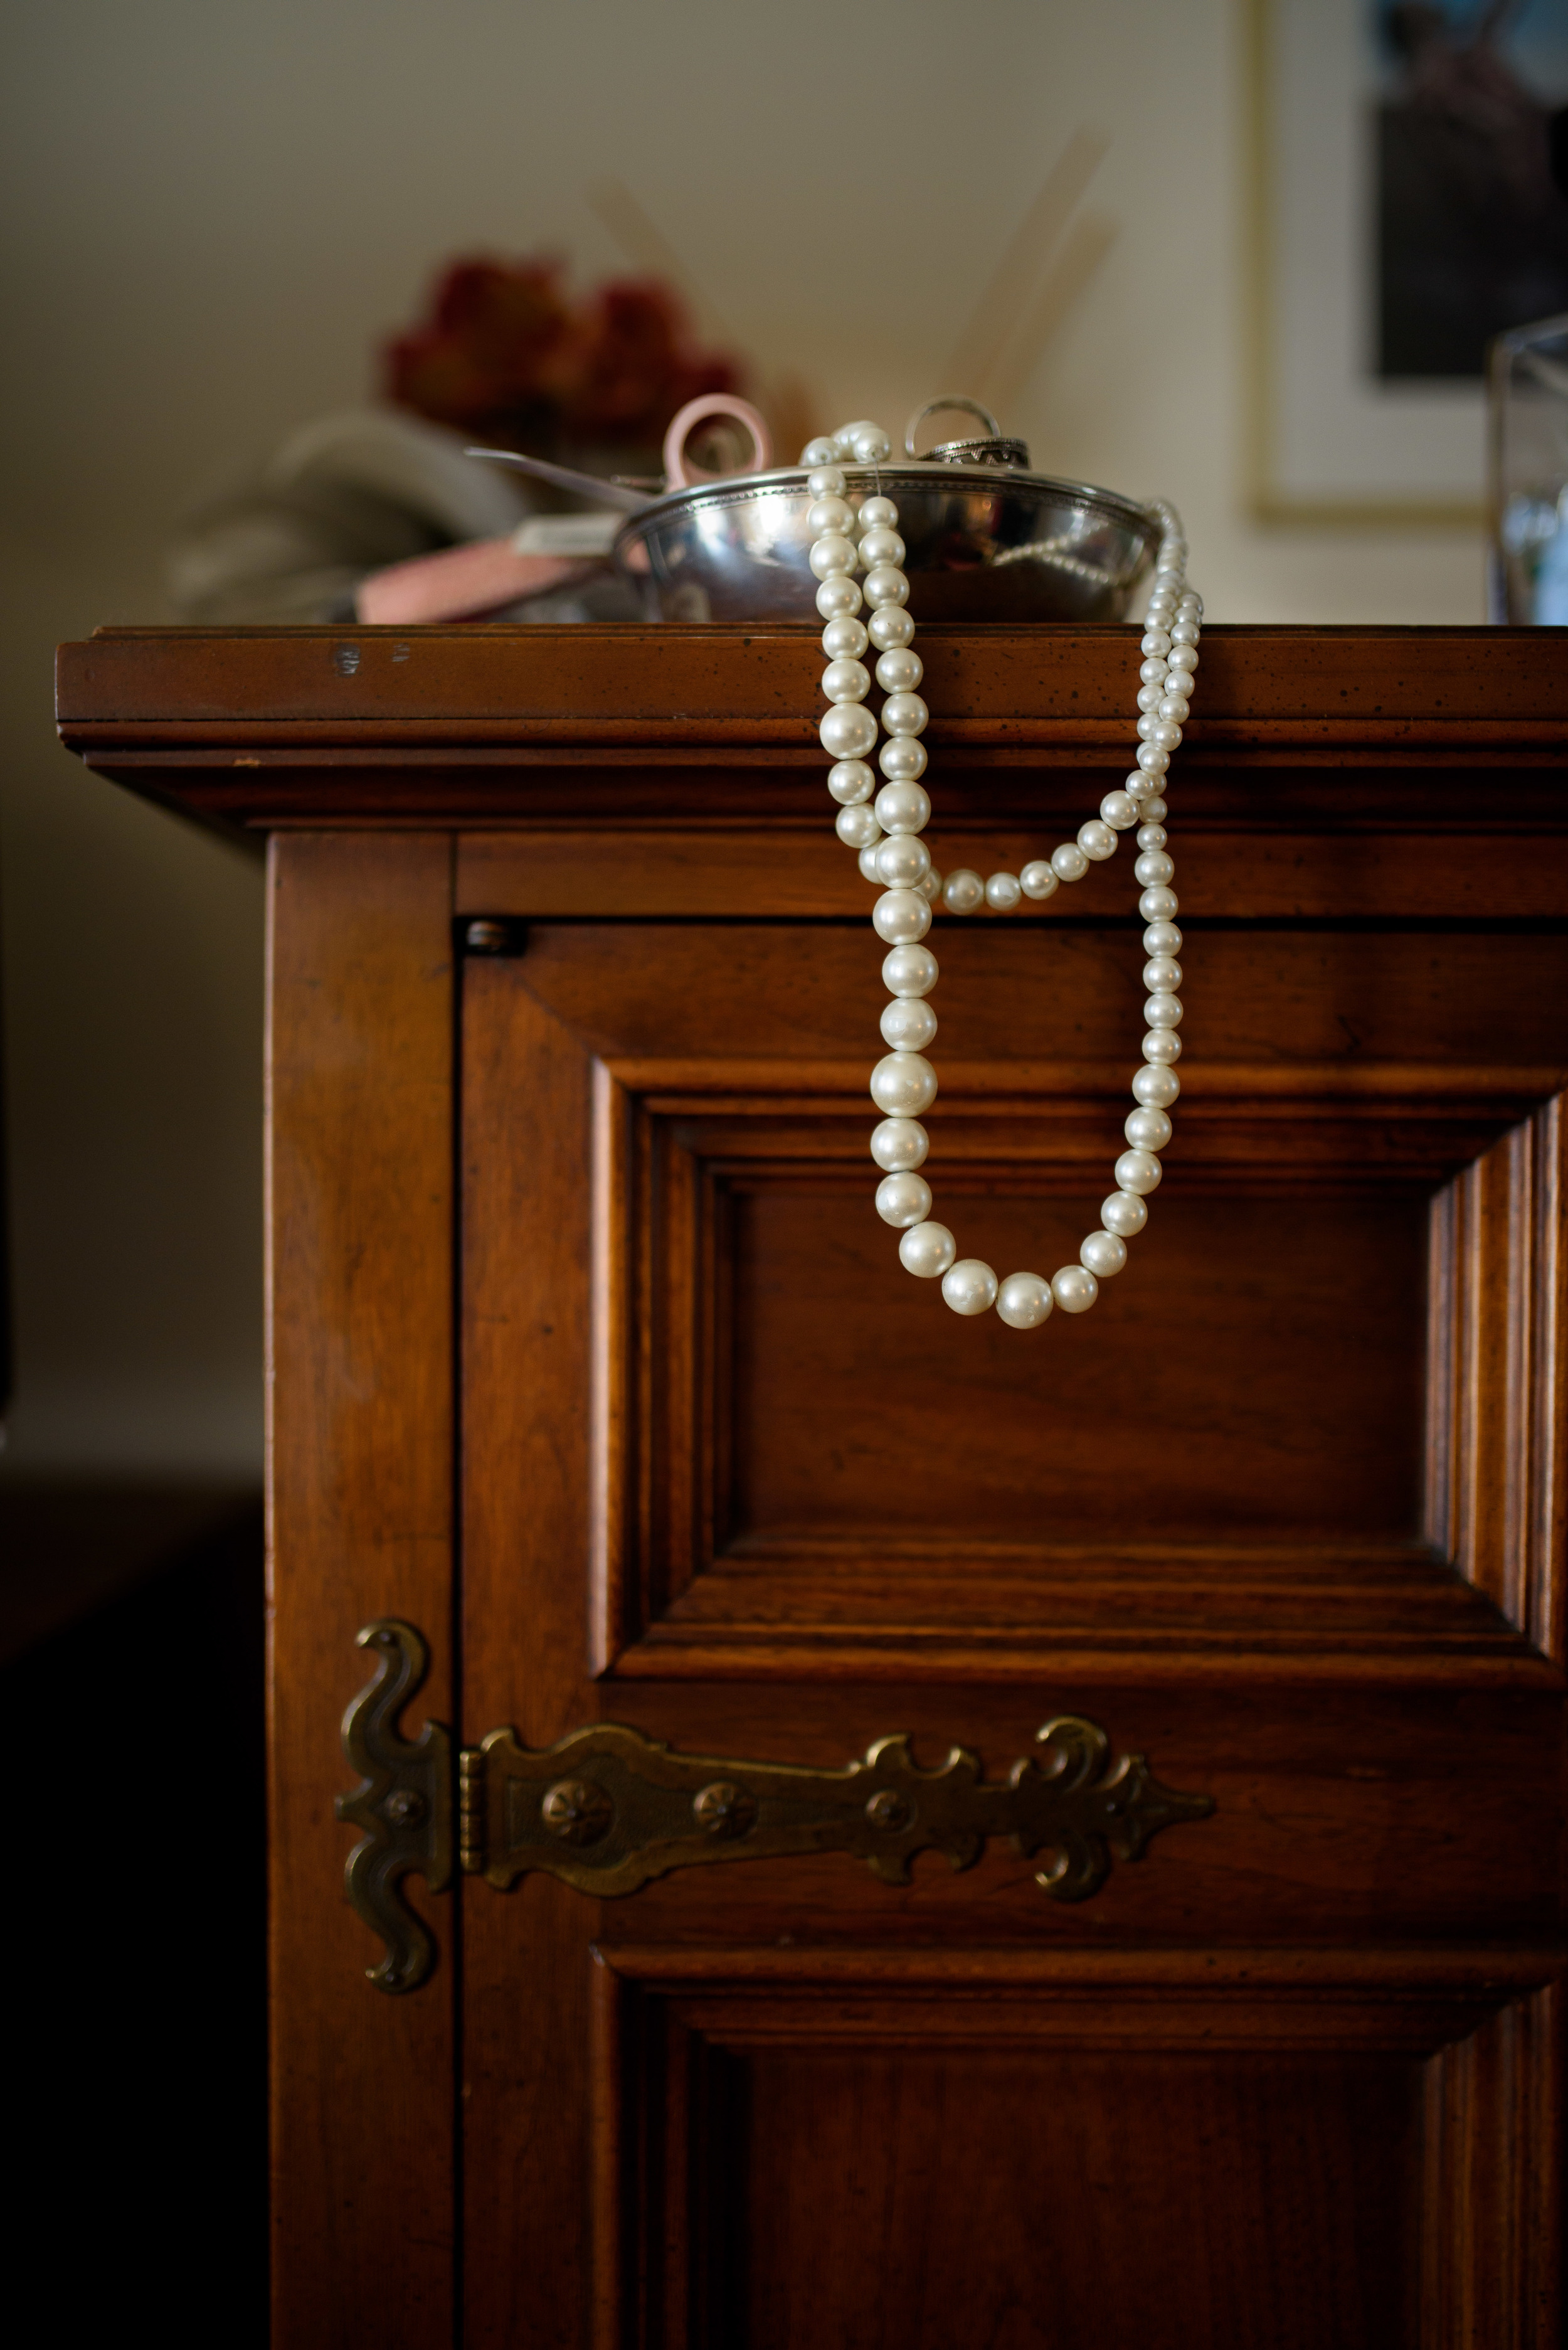 Pearl Necklace On Dresser